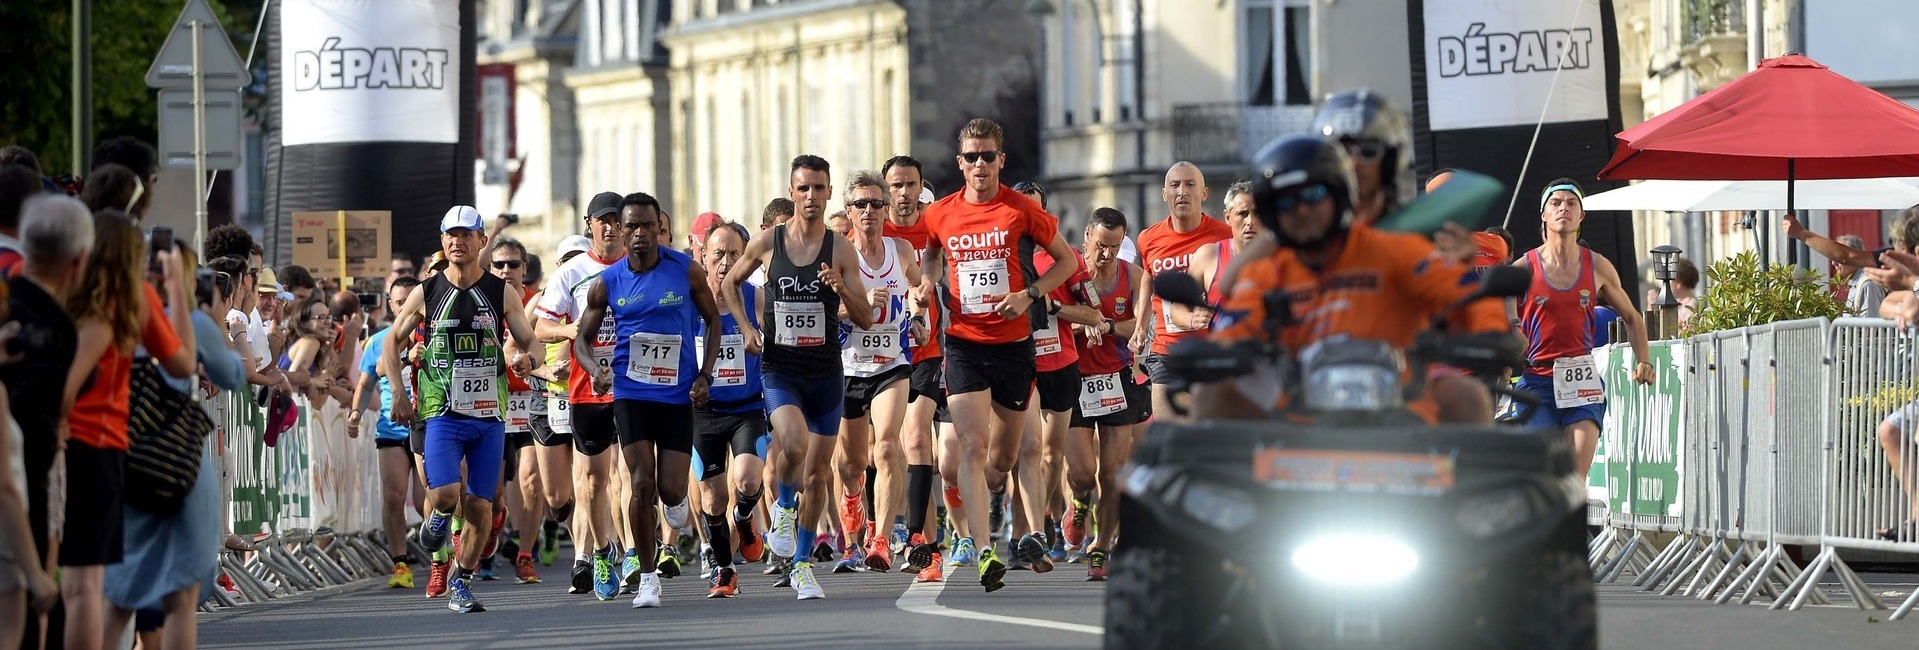 Centre France Running Tour Courir à Nevers